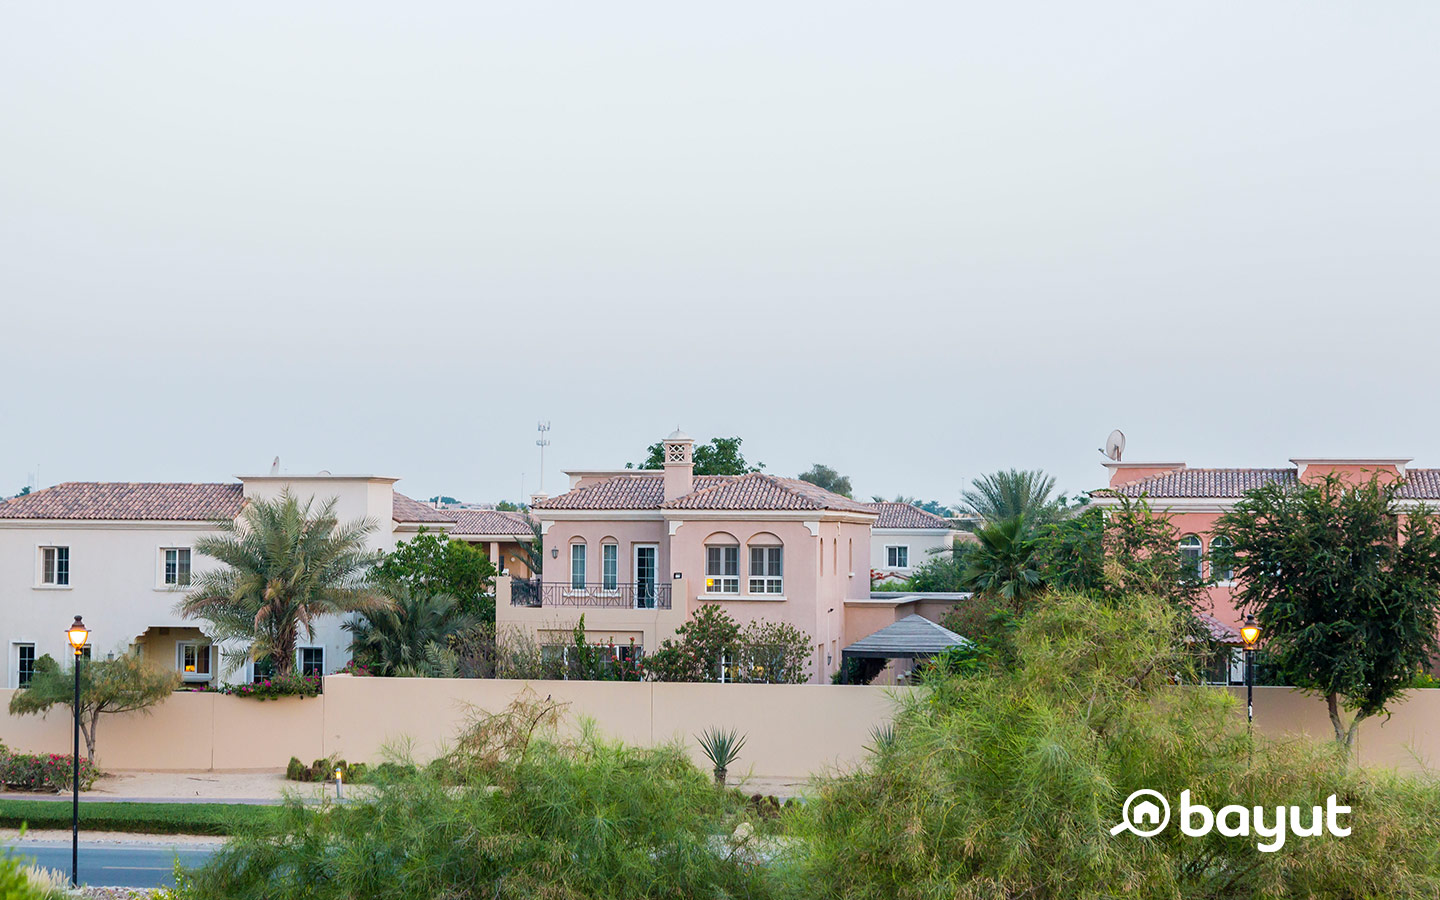 Arabian Ranches have several family-friendly villas